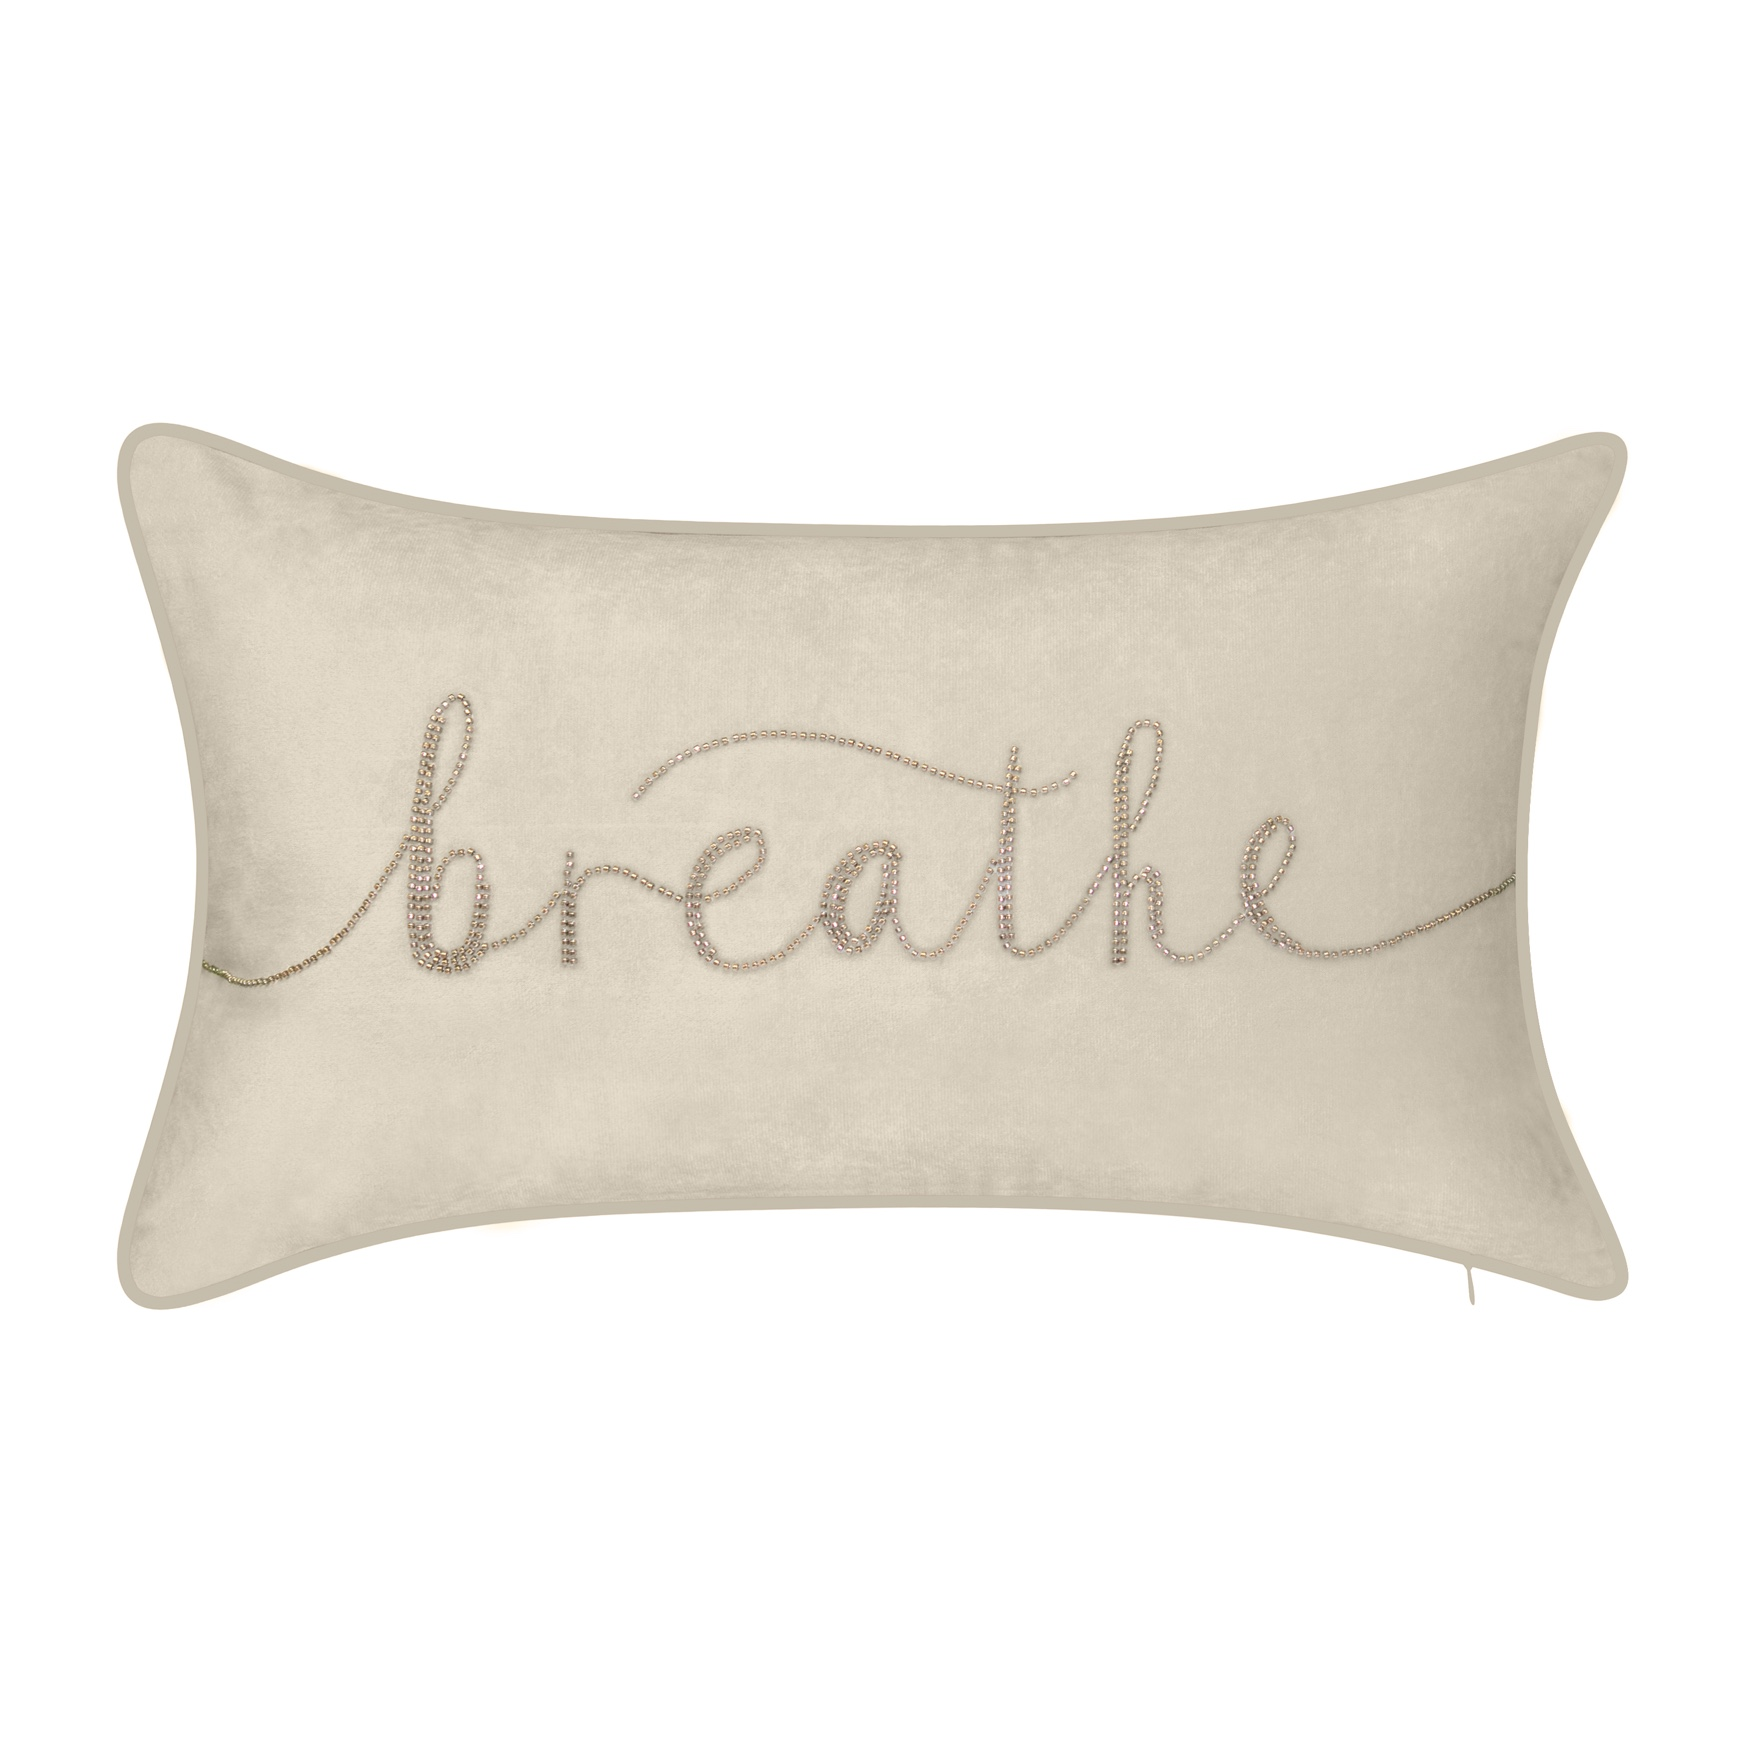 "Celebrations """"Breathe"""" Embroidered Decorative Pillow ,"